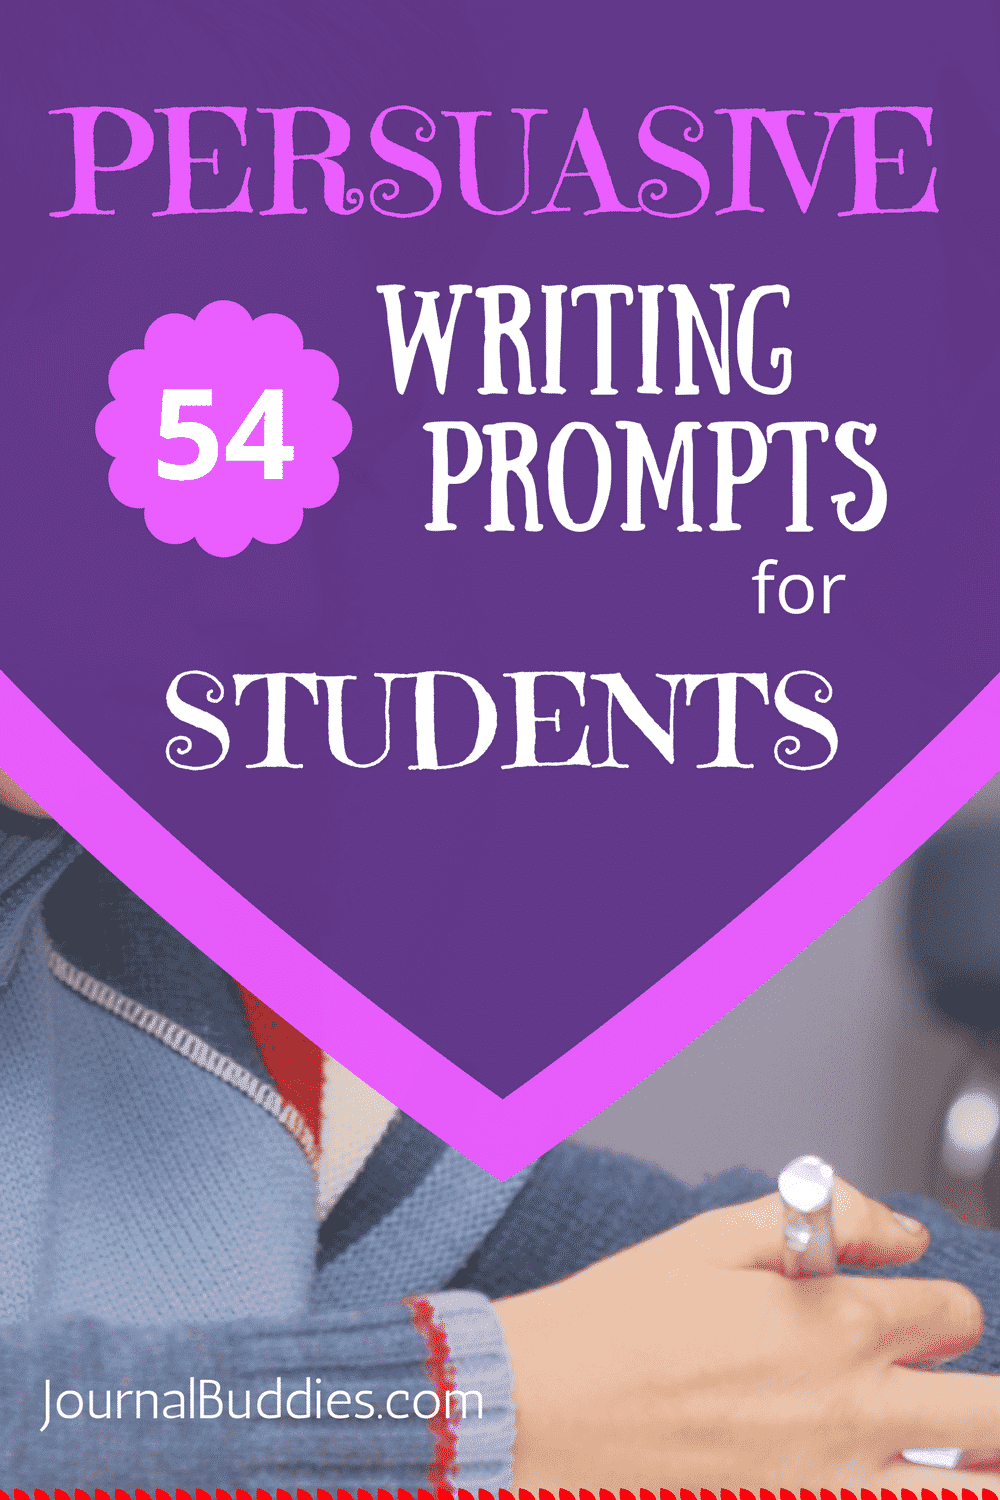 54 Persuasive Writing Prompts for Students